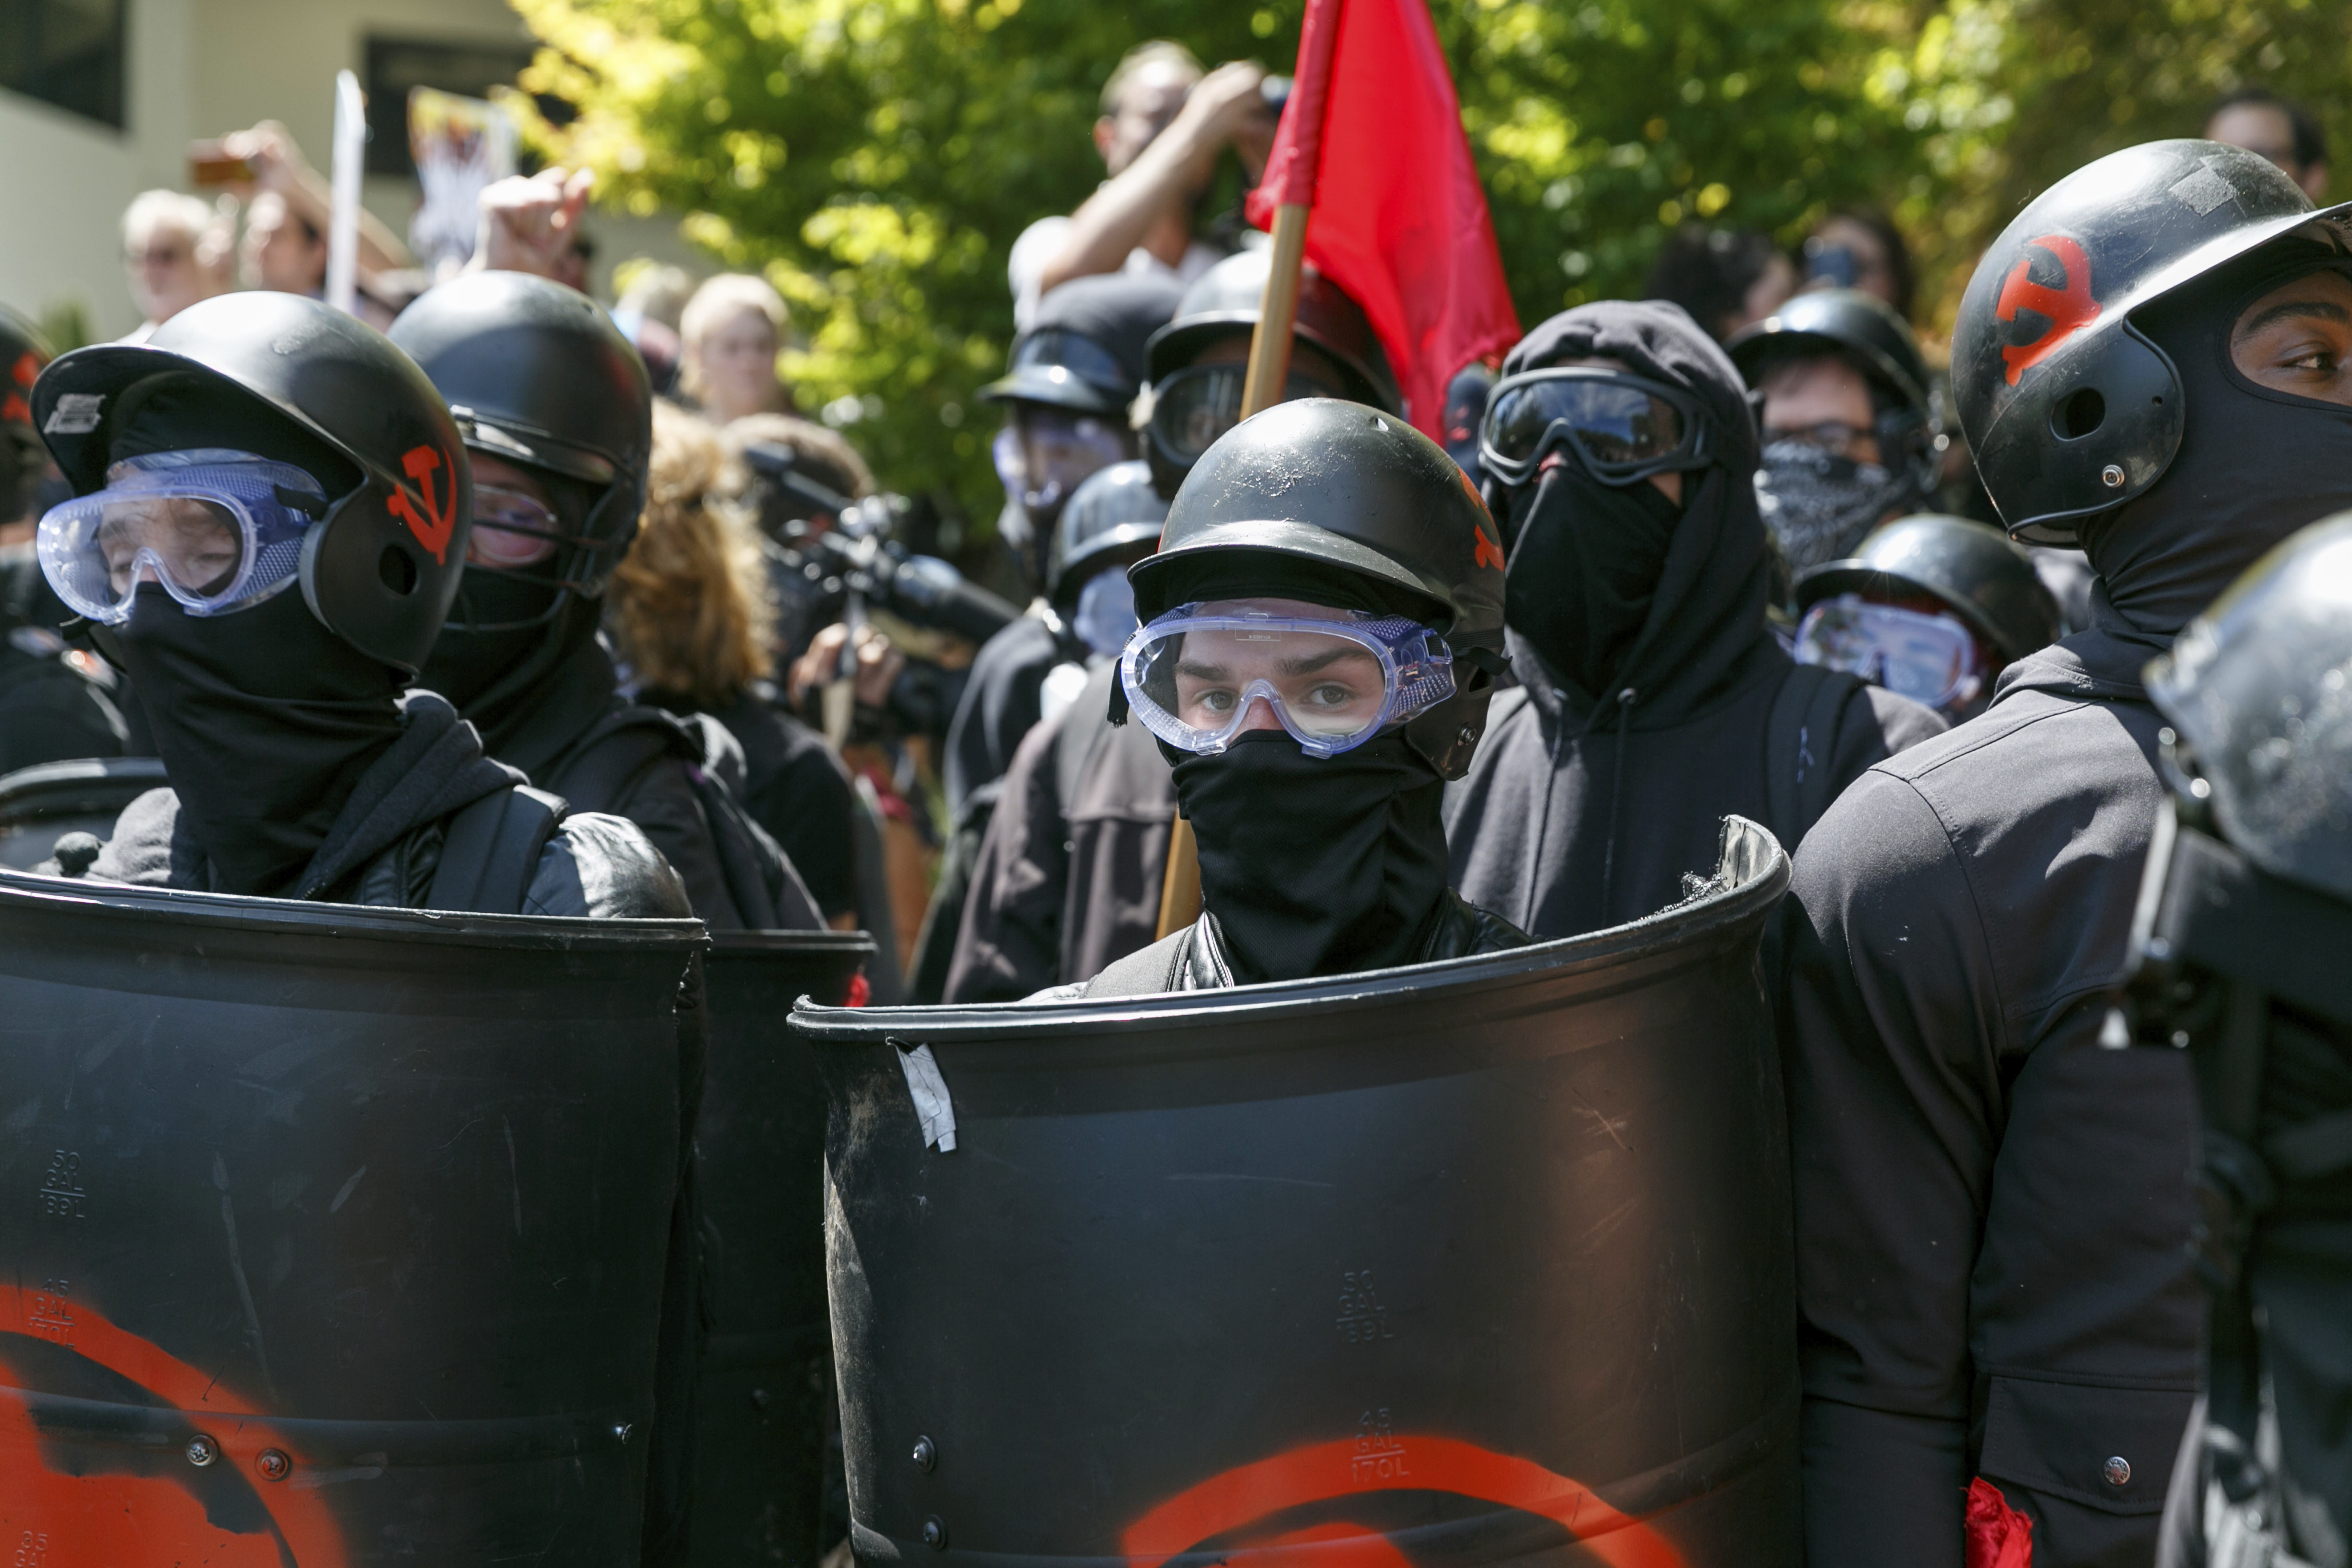 Risk of clashes at rally mobilizes Portland, Oregon, police